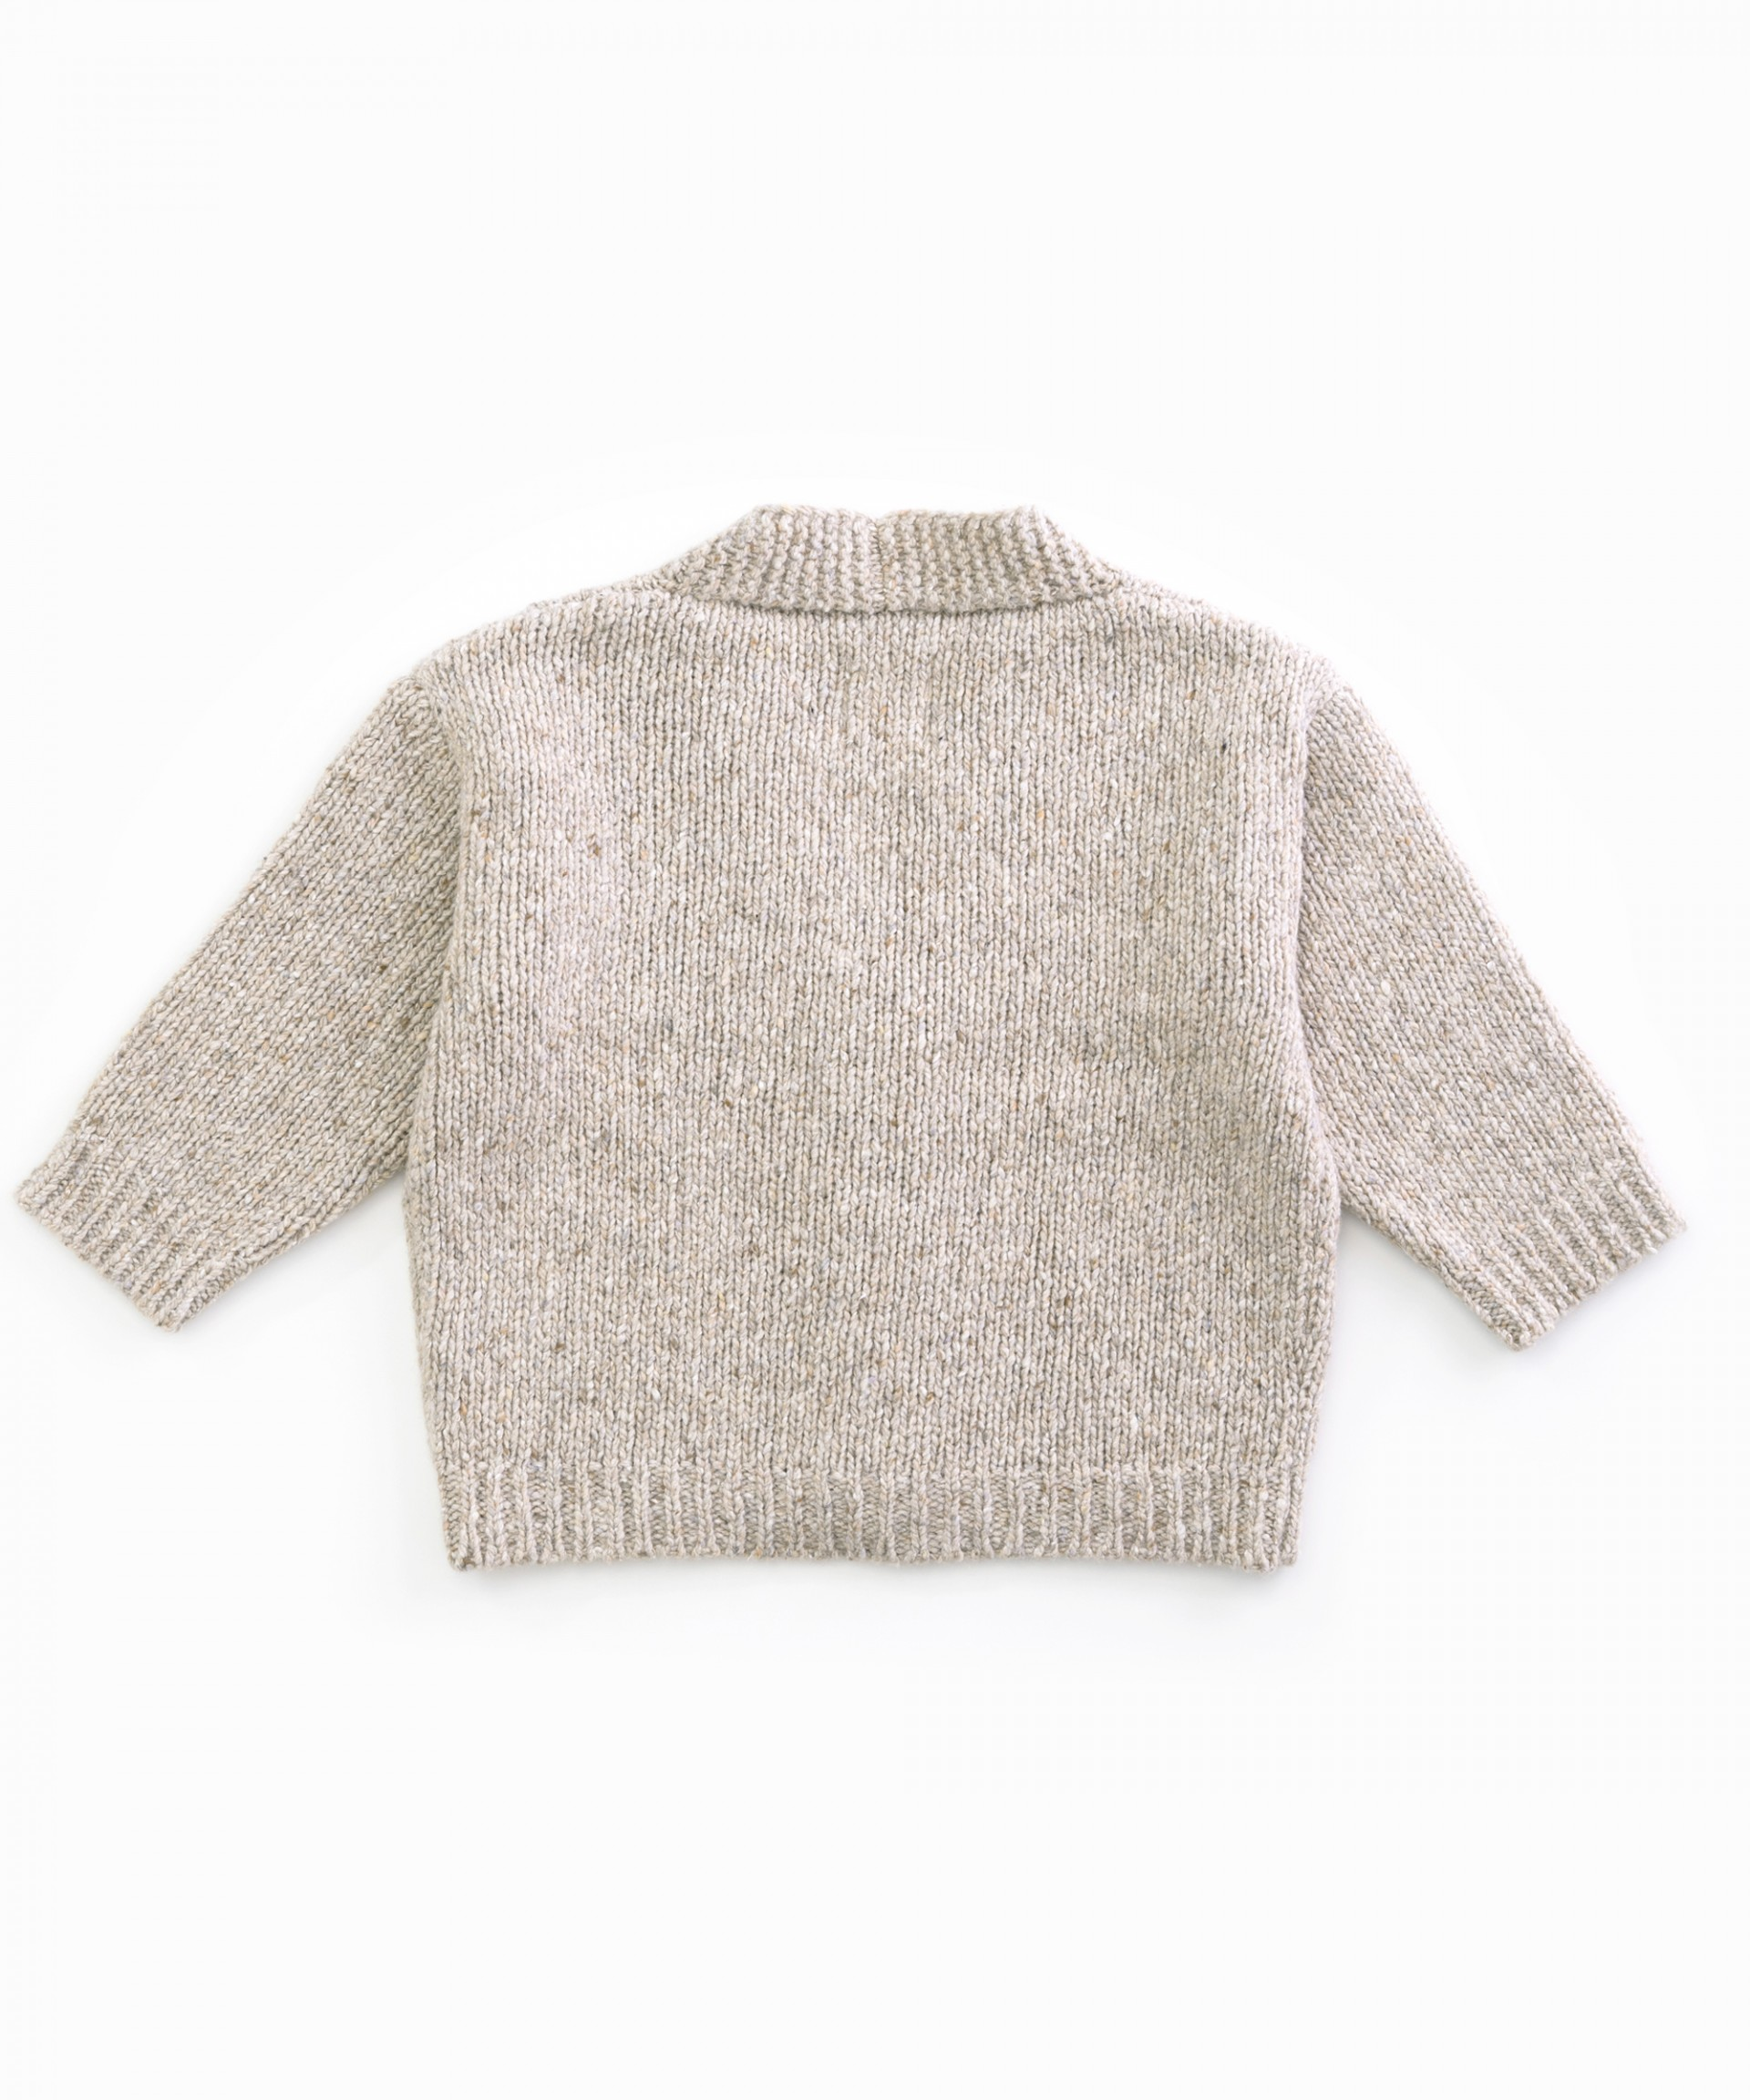 Knitted cardigan with recycled fibres | Woodwork